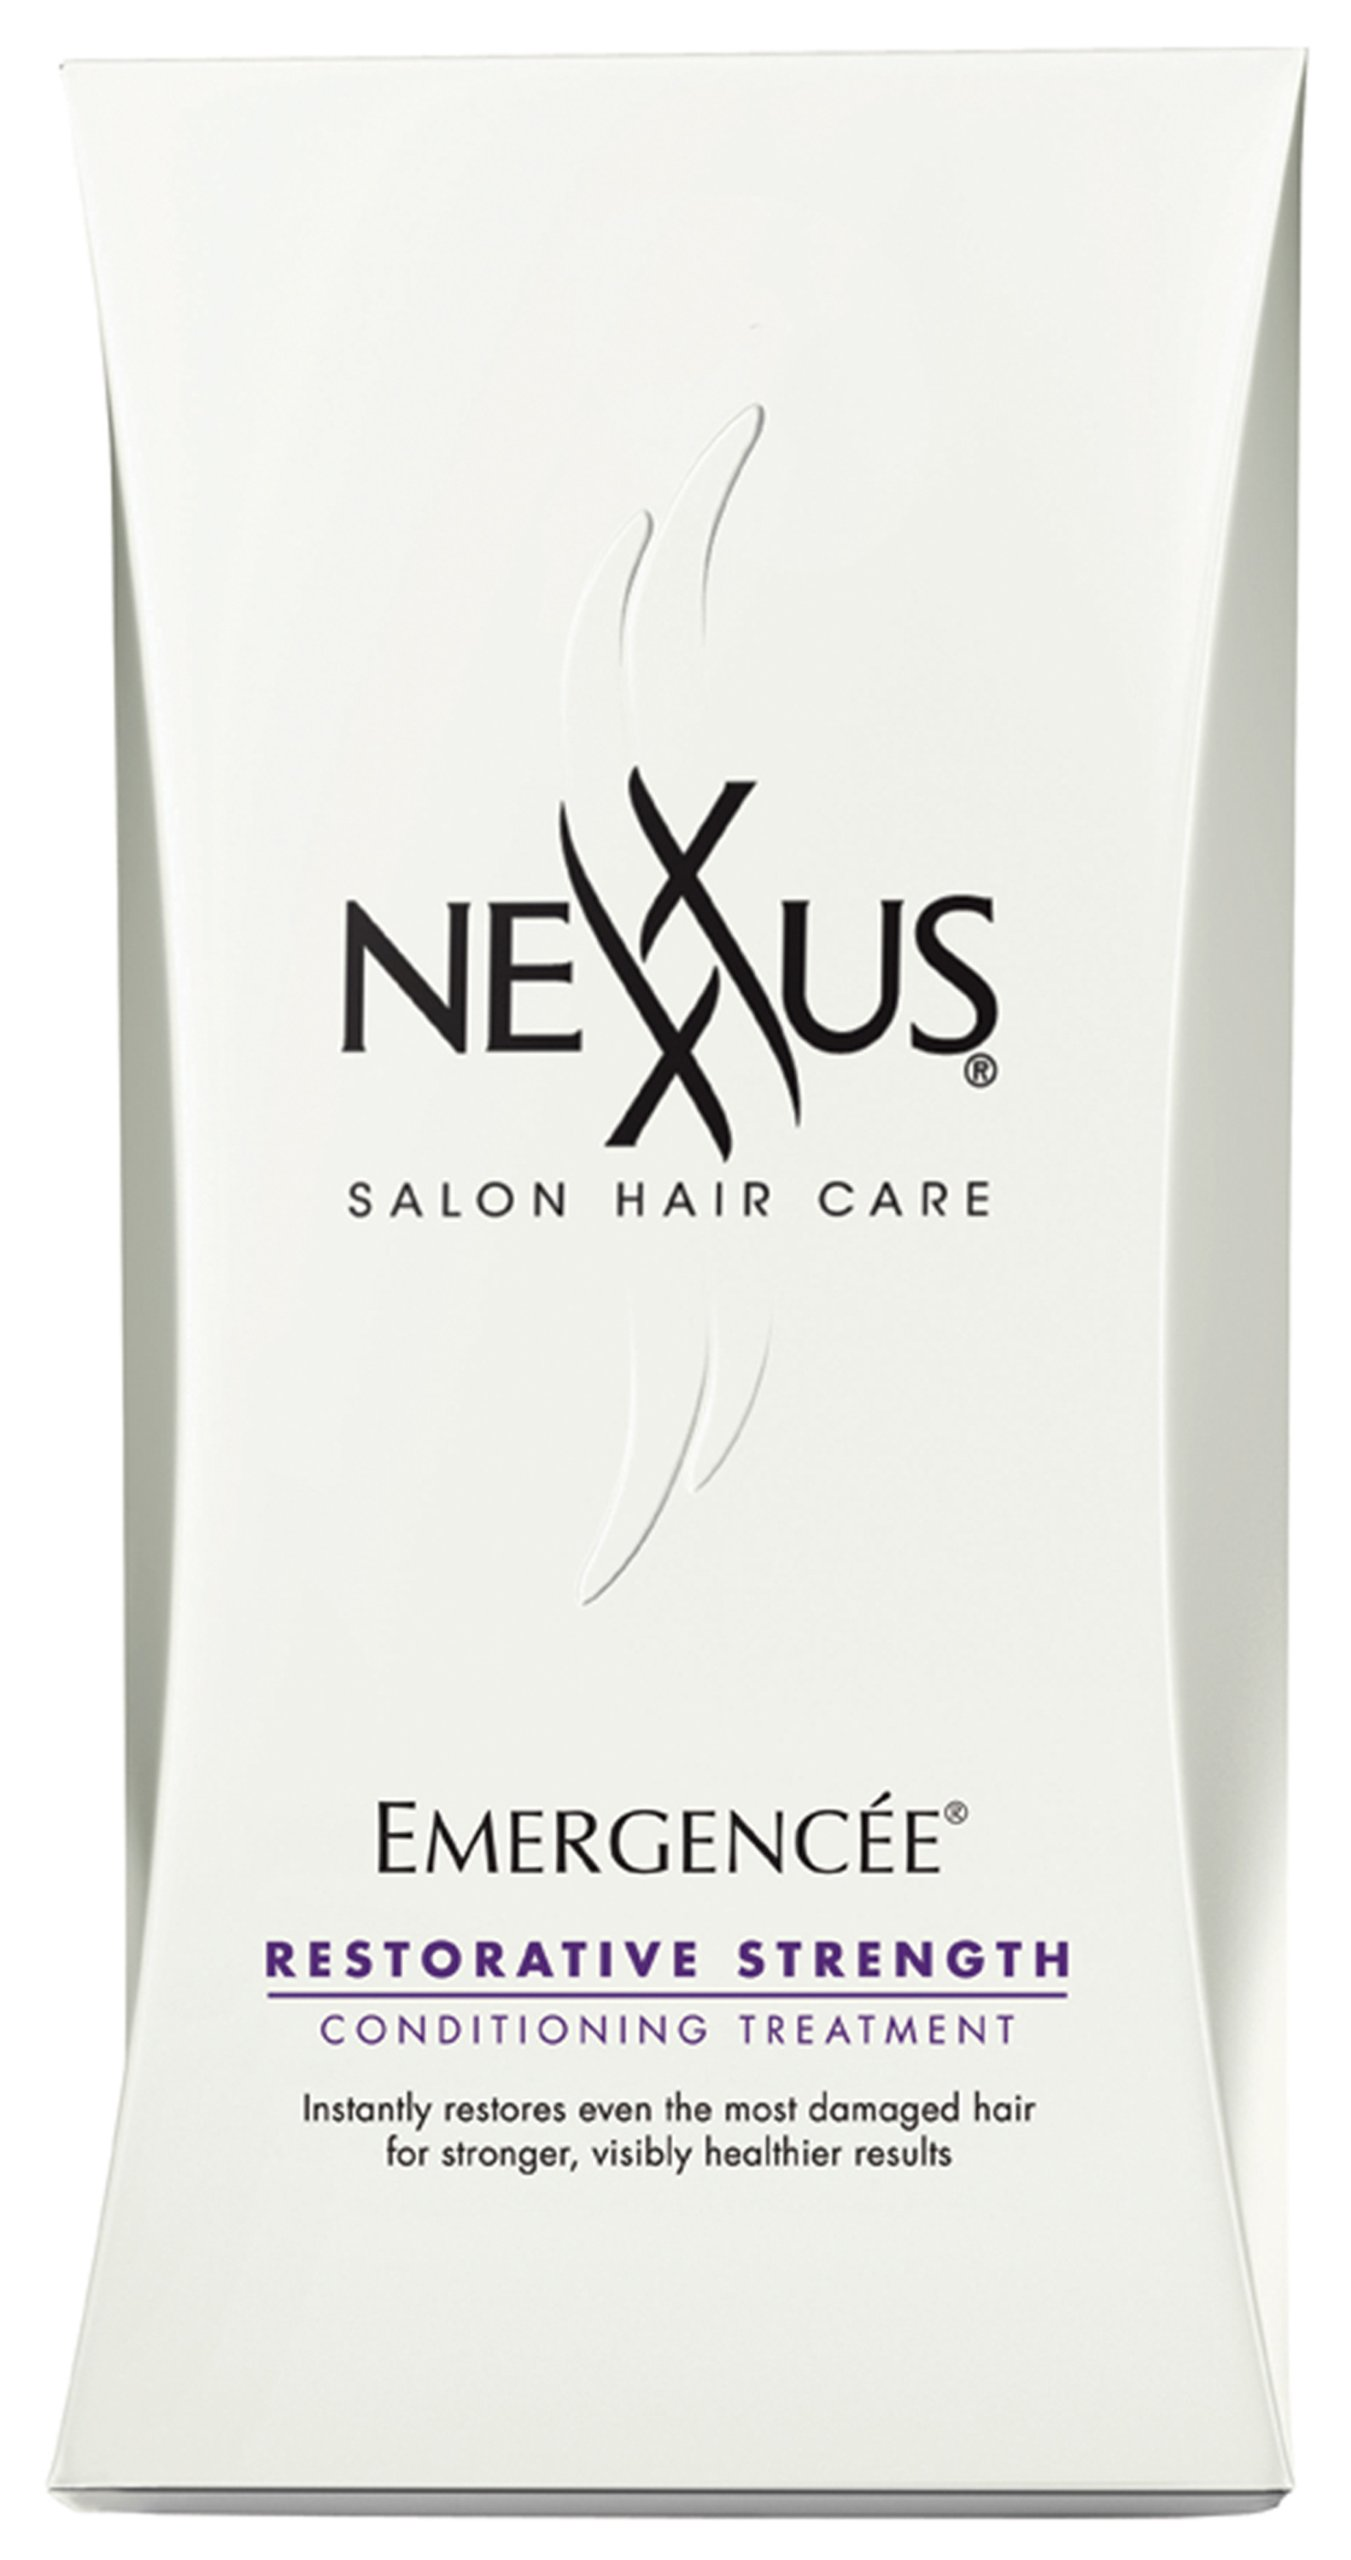 Nexxus Emergencee Restorative Strength Conditioning Treatment 3.3 Ounce